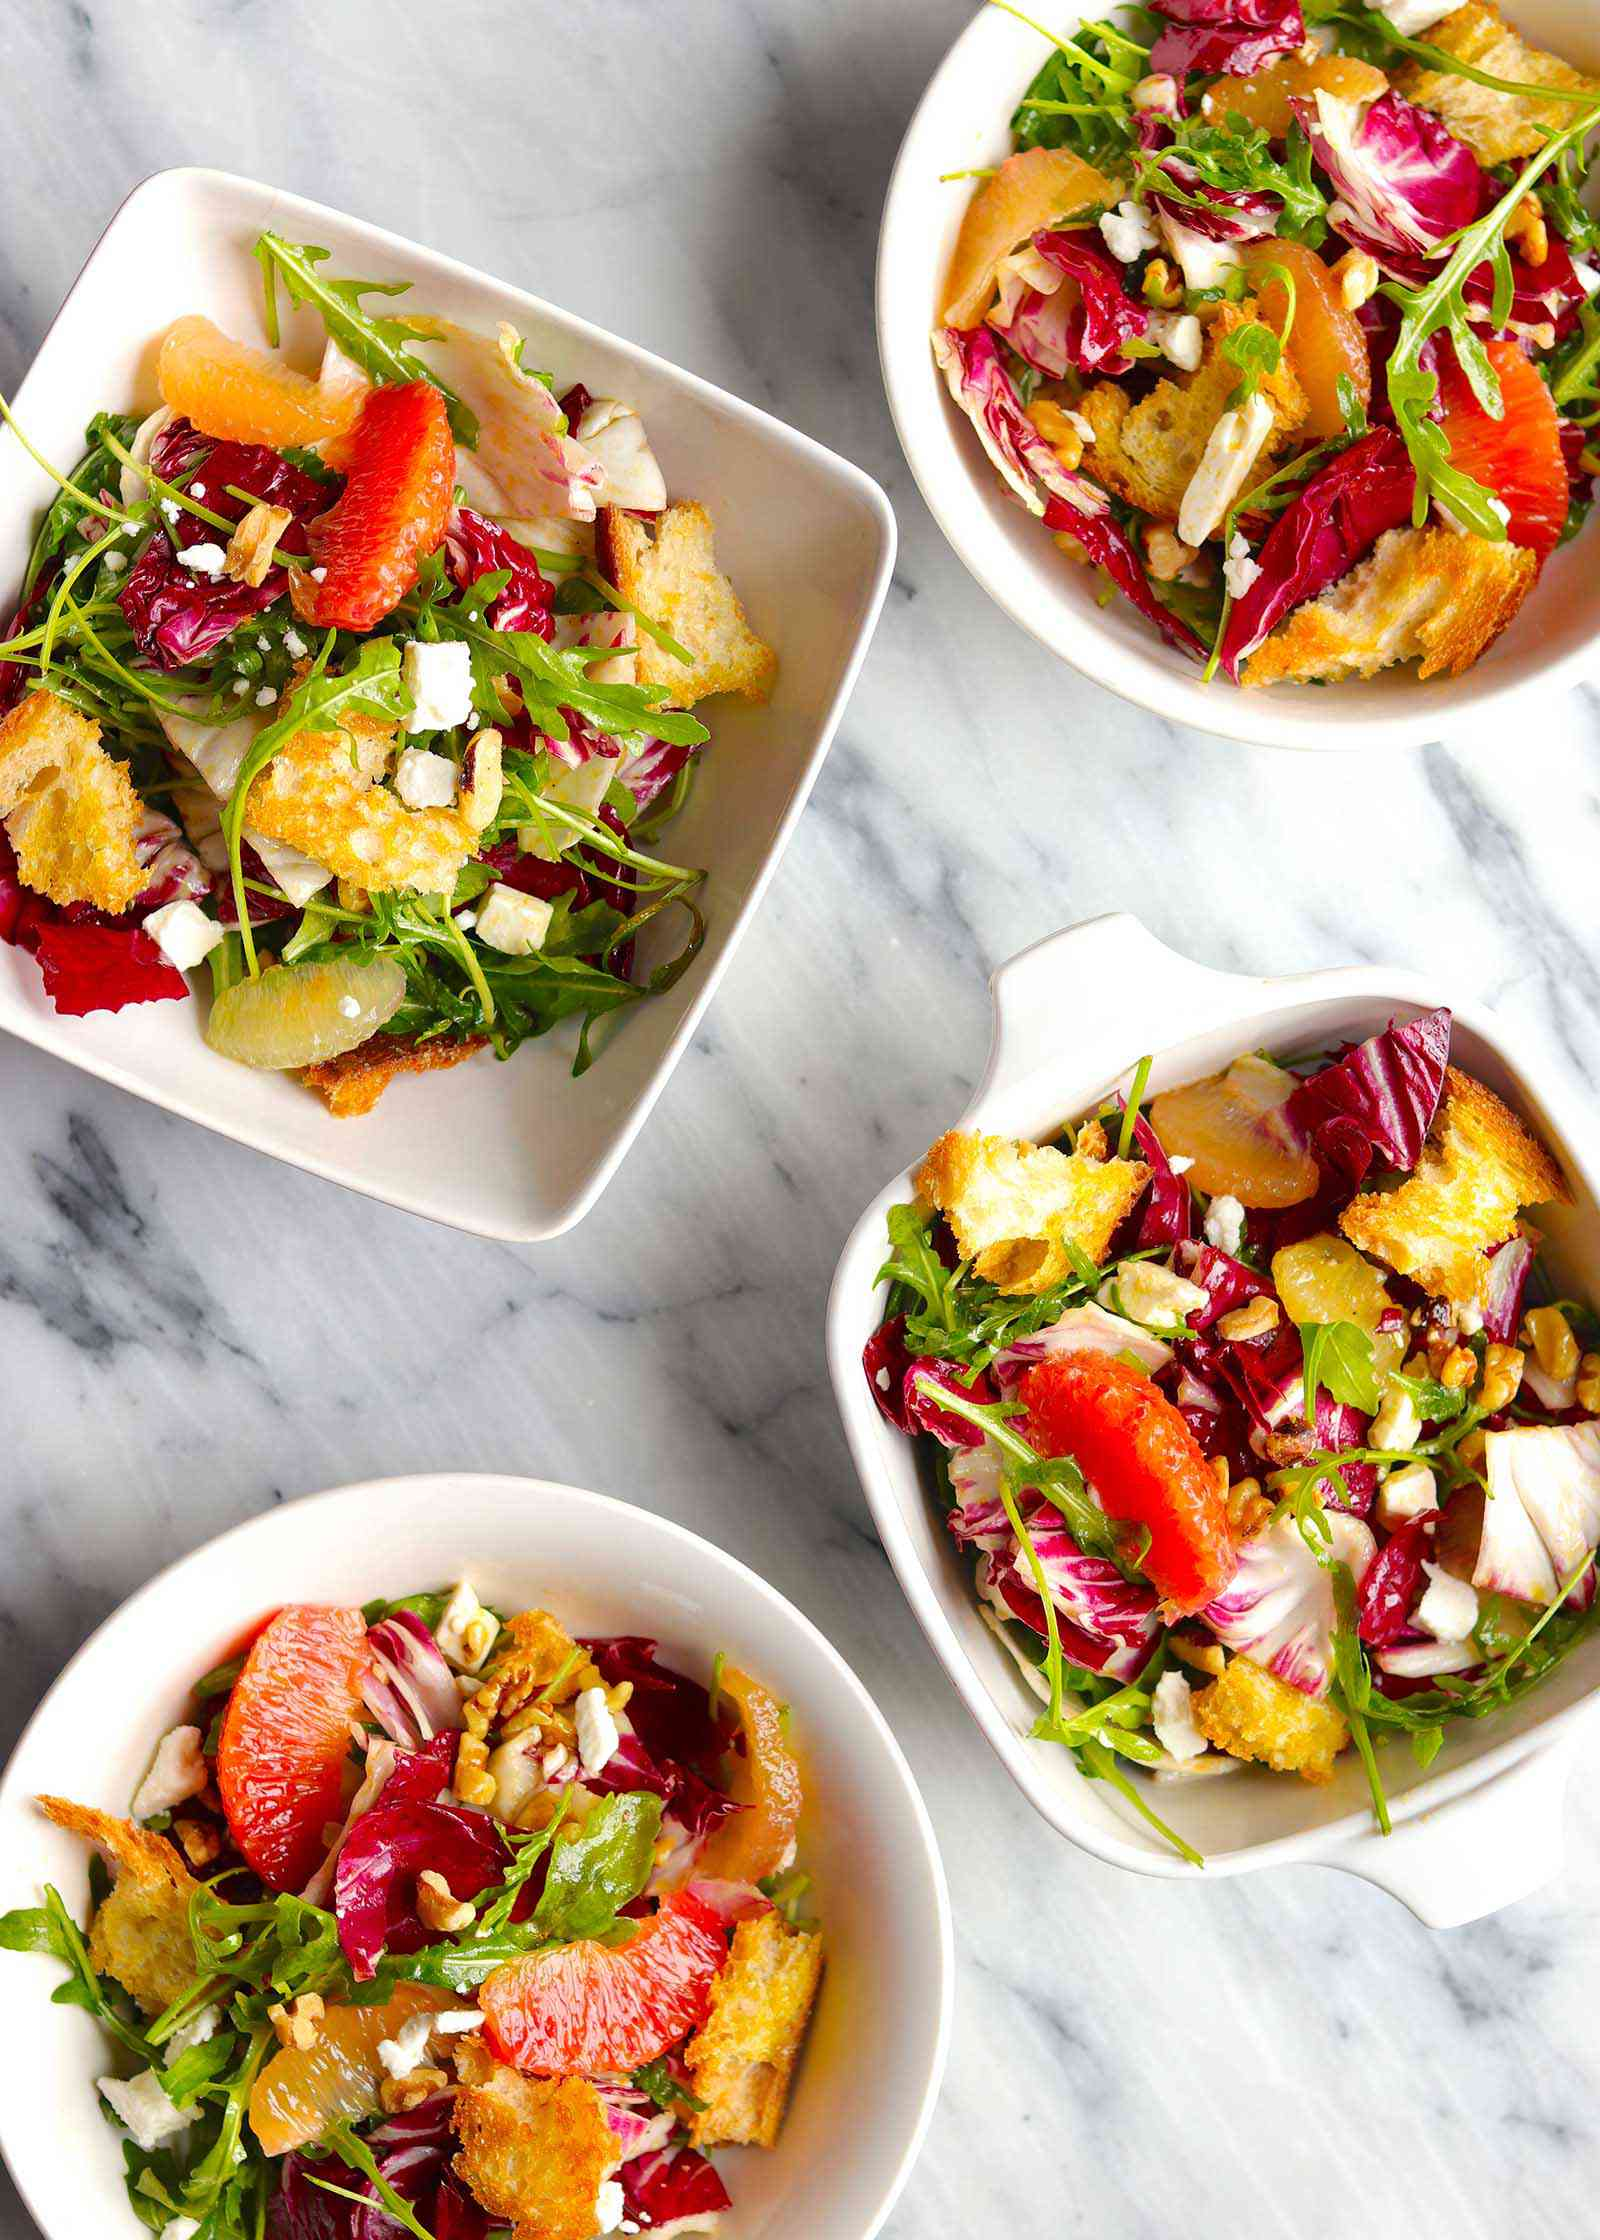 Overhead view of four white bowls with winter salad inside. Arugula, radicchio, supremed citrus, croutons and crumbled feta are visible in each bowl.